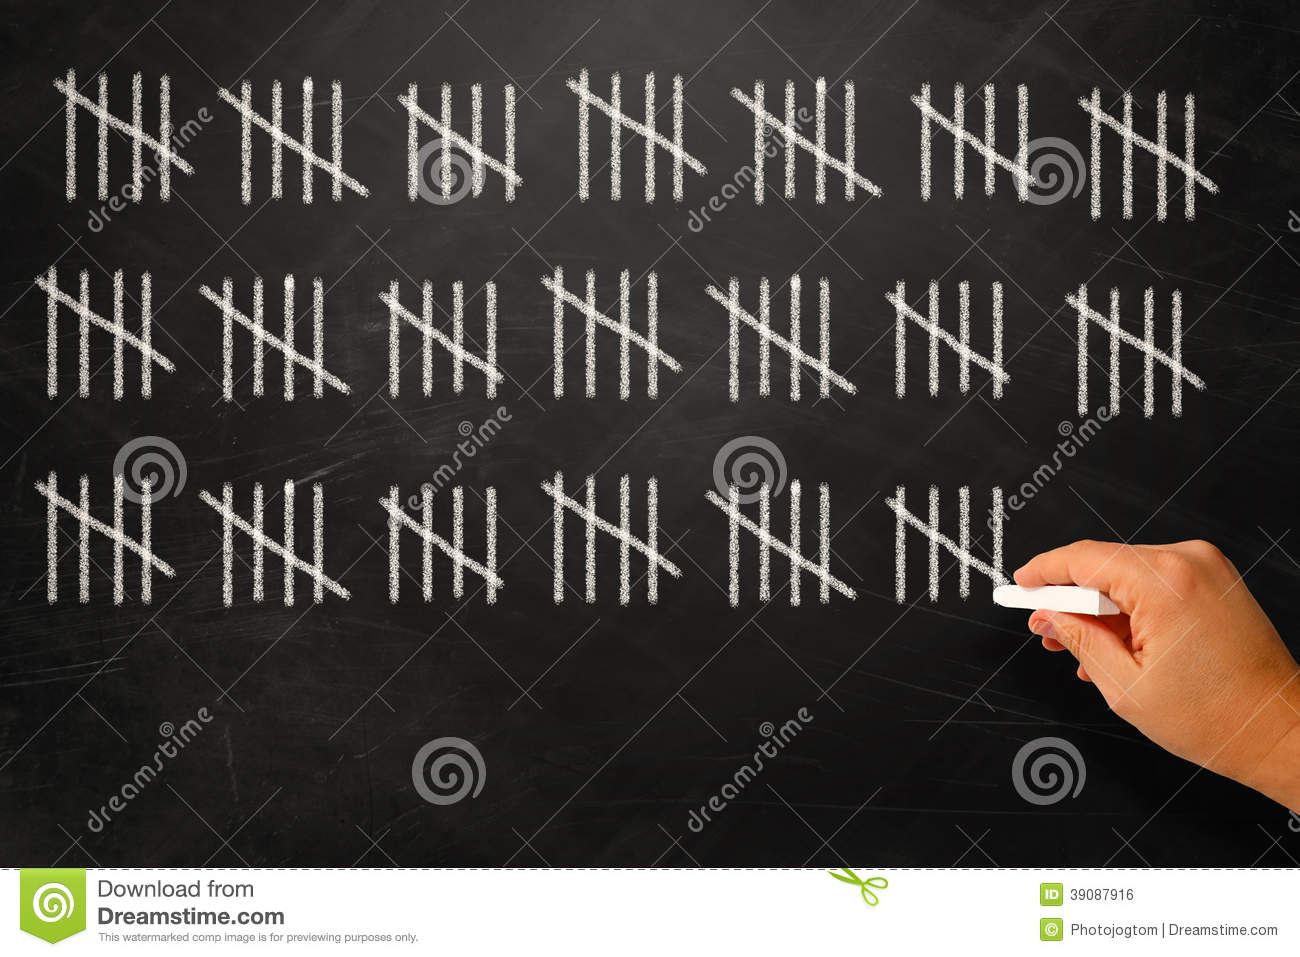 counting-days-drawing-sticks-black-board